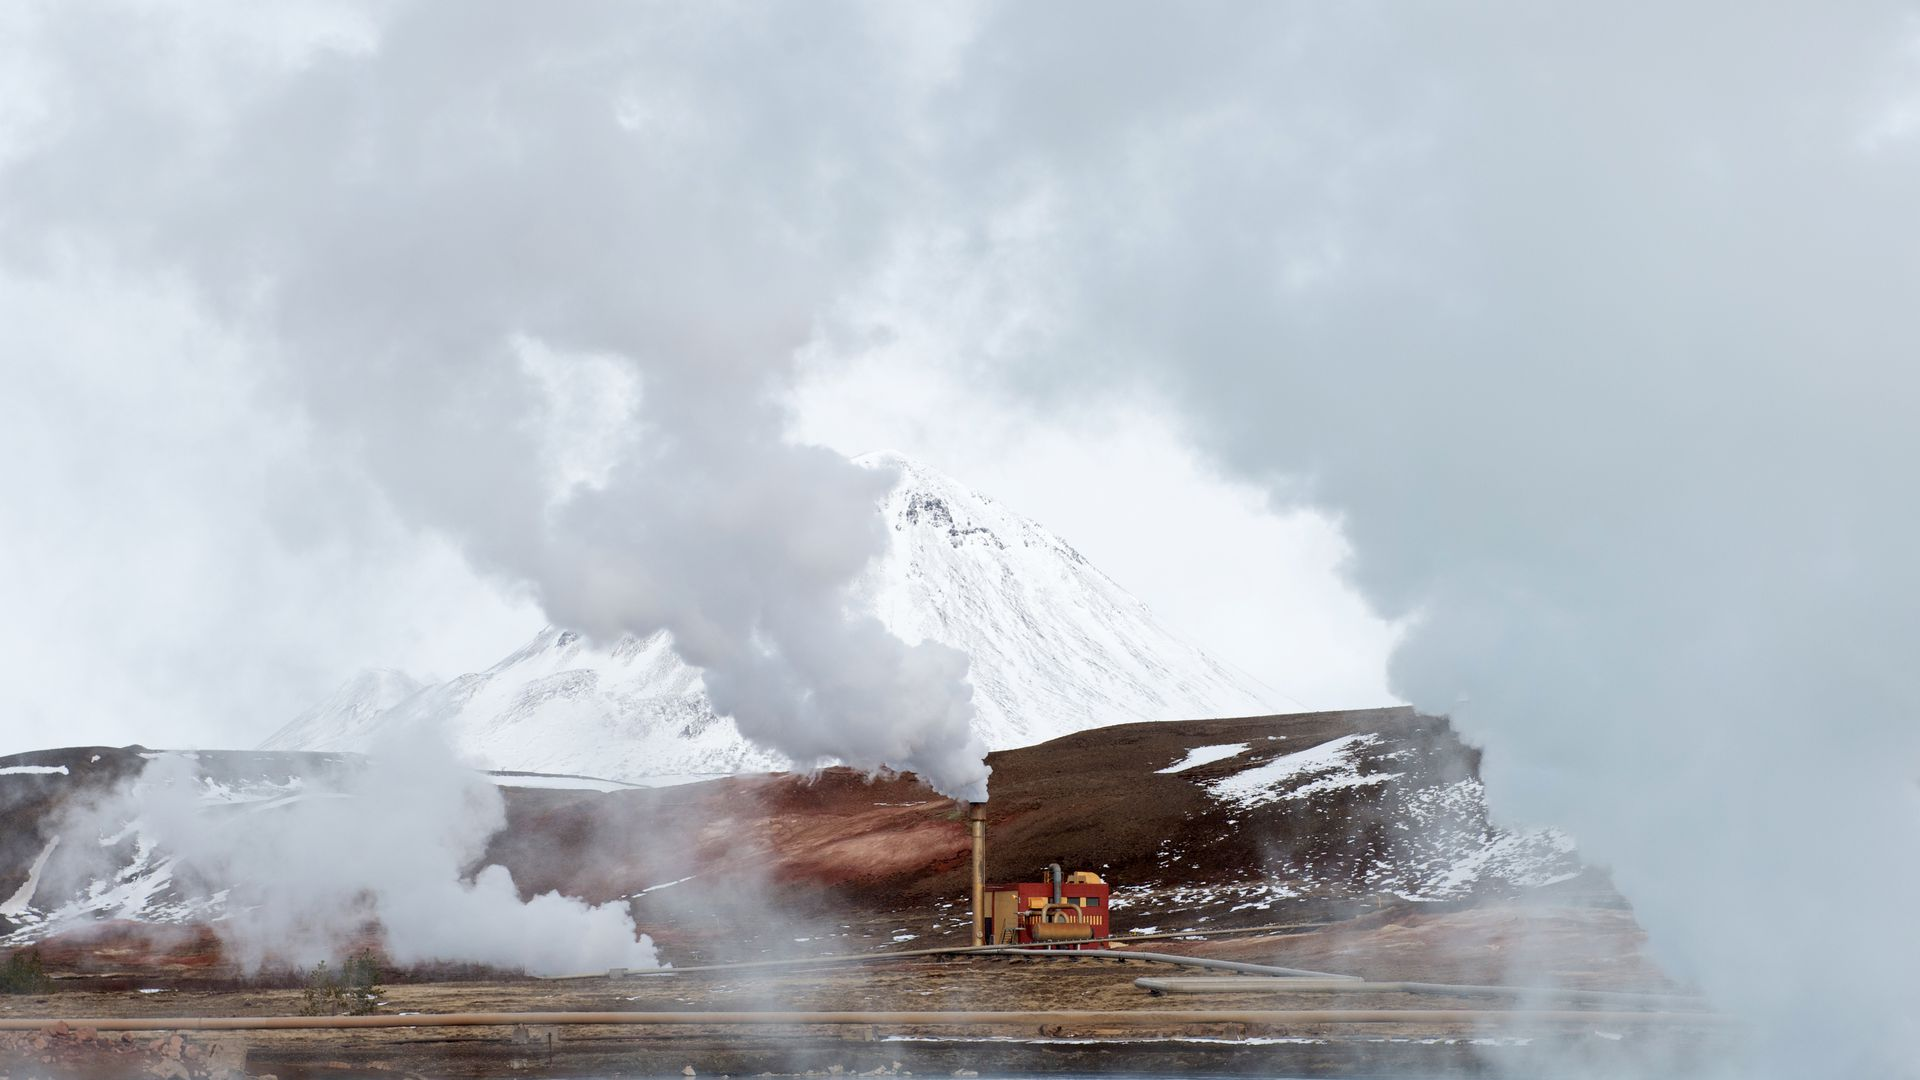 A geothermal plant spewing steam on April 12, 2017, outside Myvatn, Iceland.